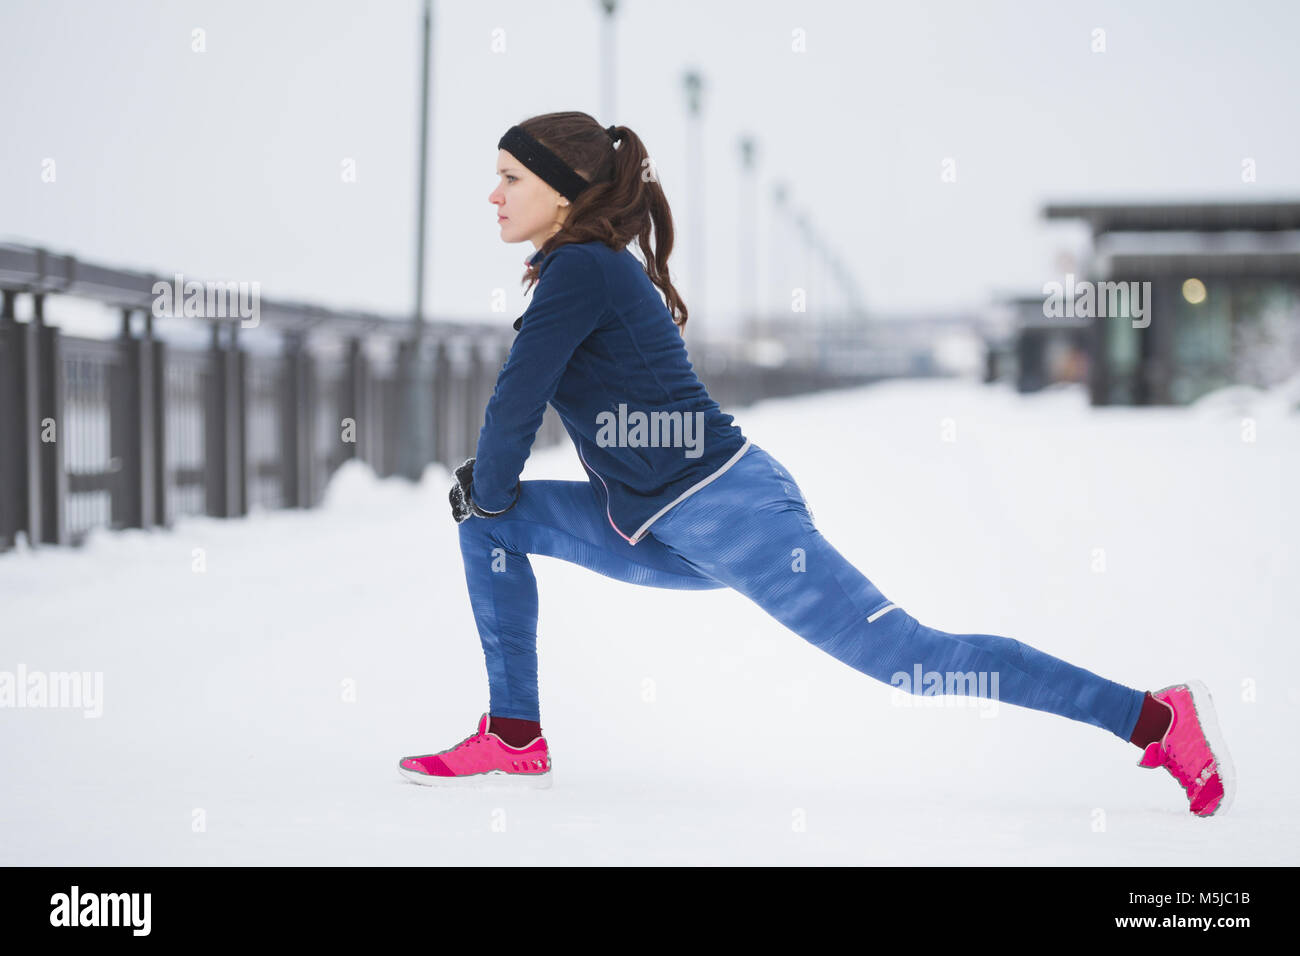 Young woman runner doing flexibility exercise for legs before run at snow winter promenade, - Stock Image